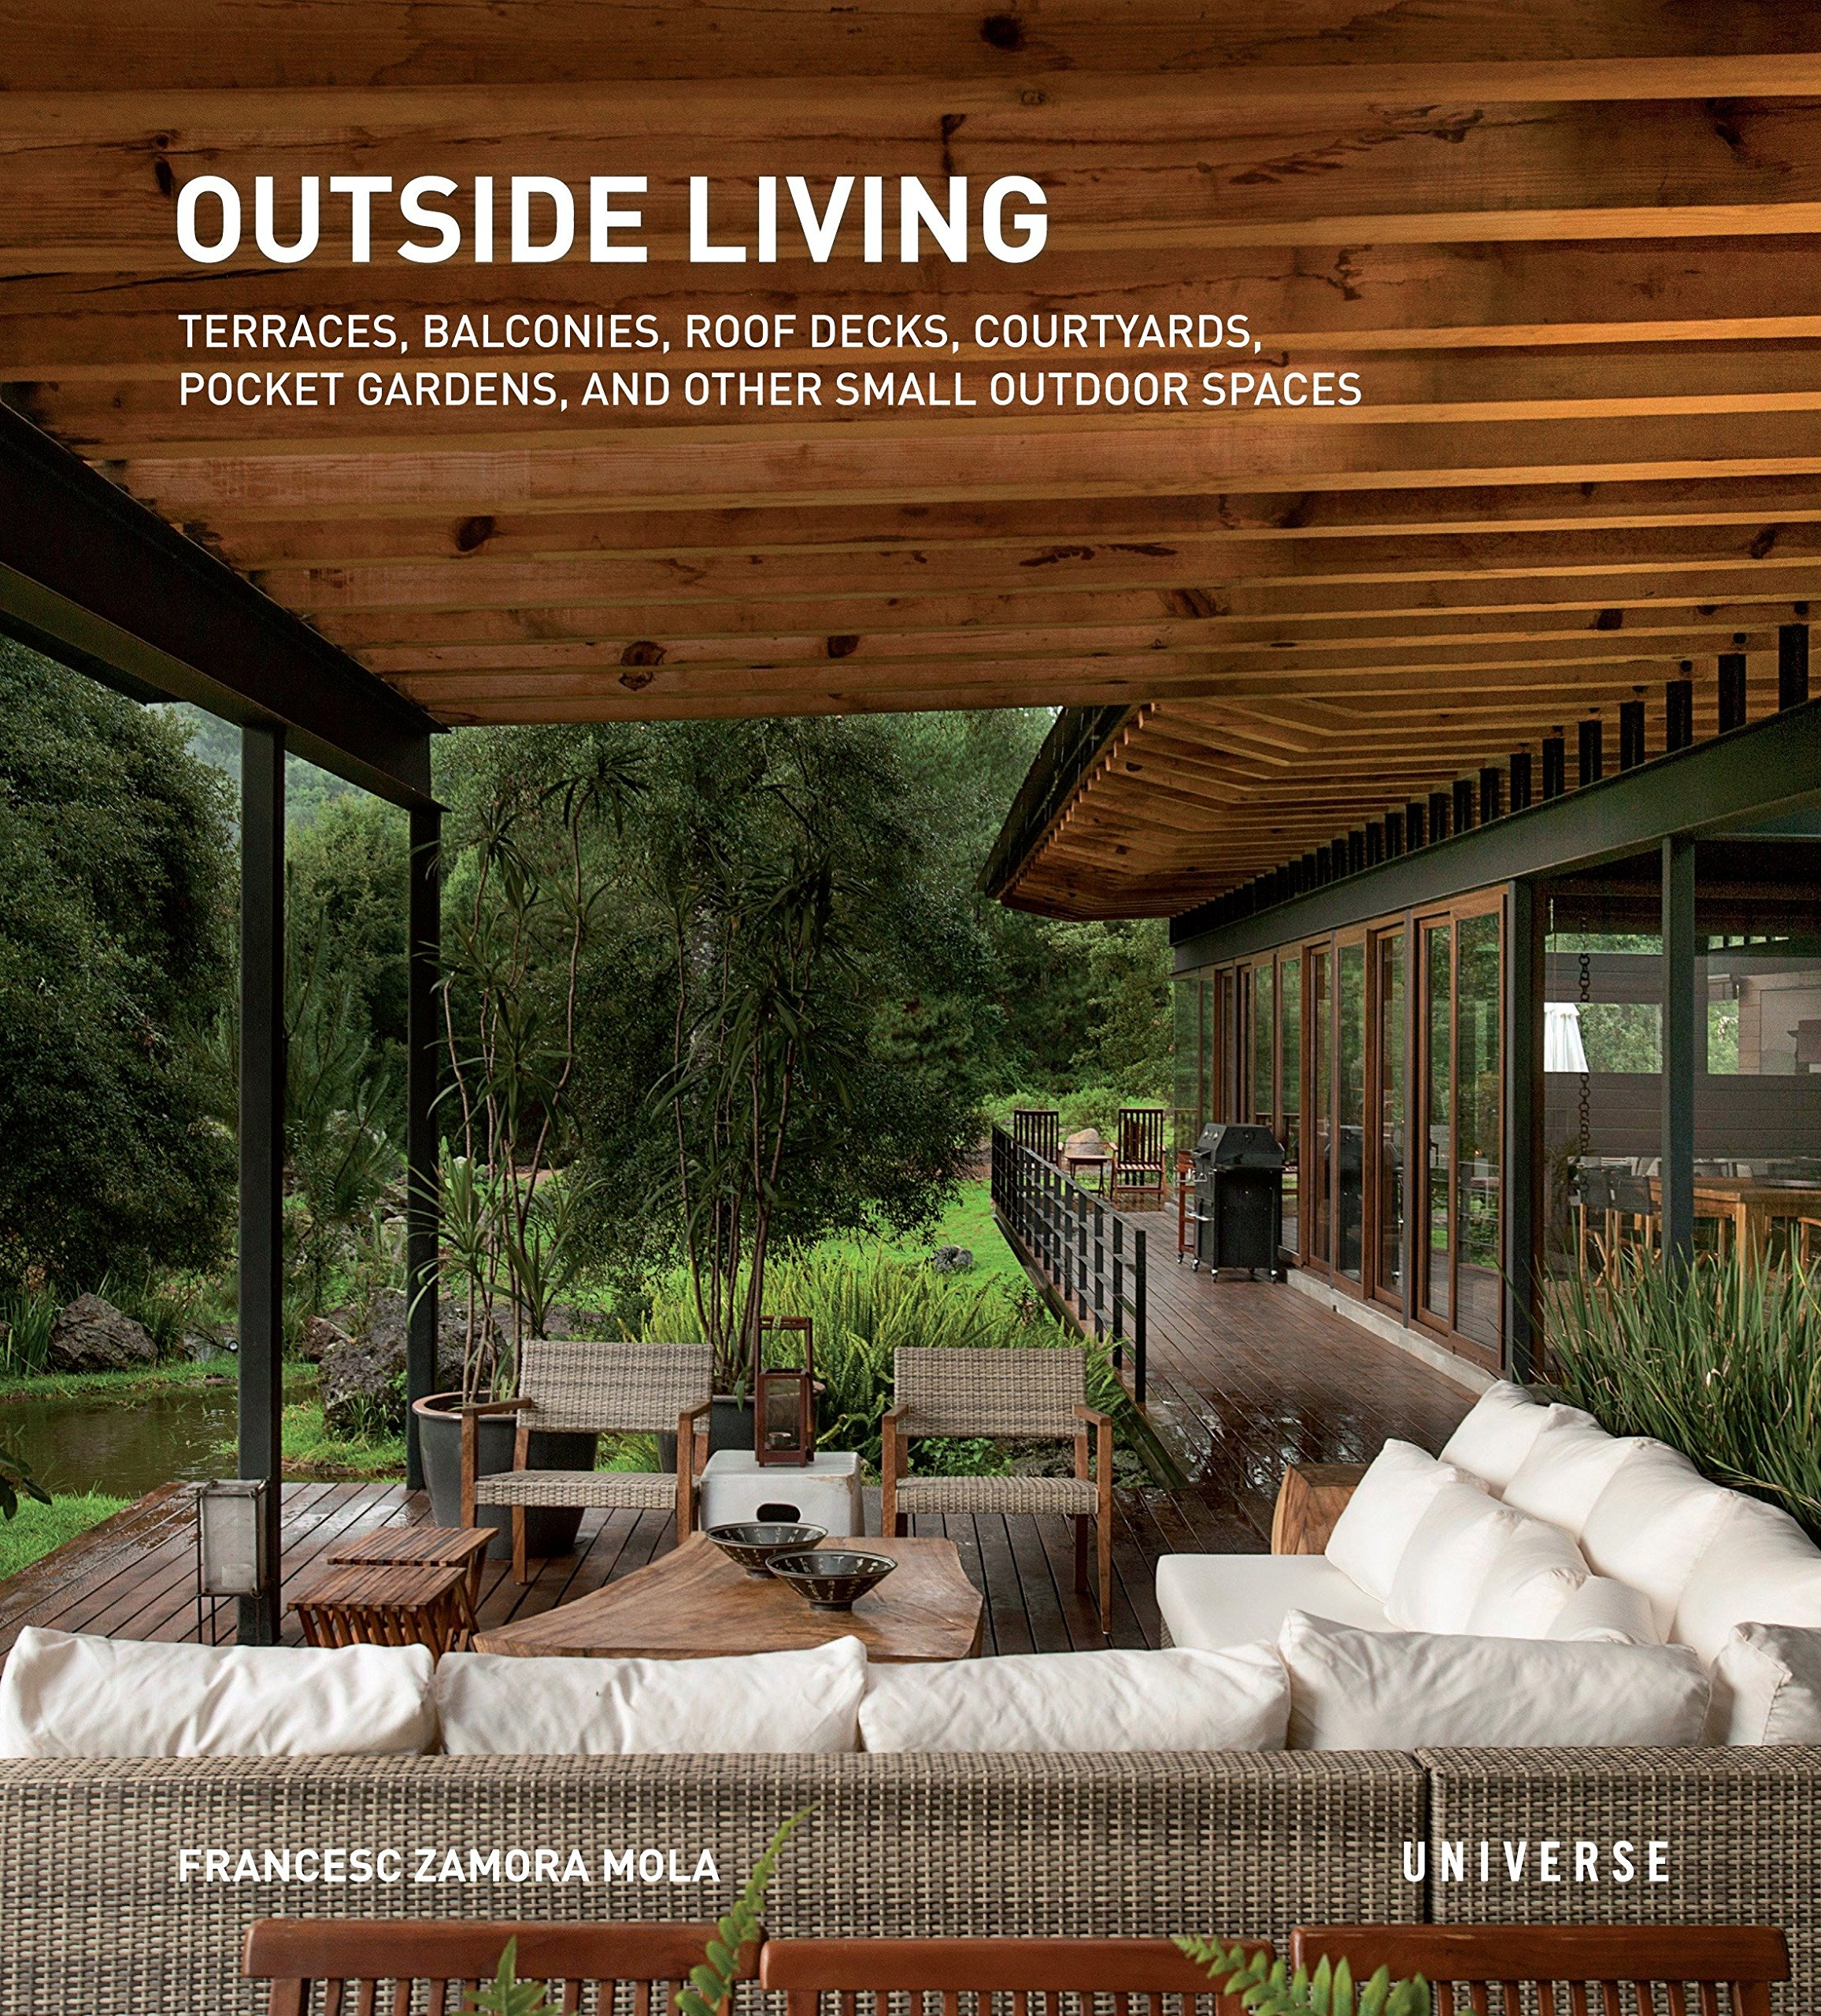 Outside Living: Terraces, Balconies, Roof Decks, Courtyards, Pocket Gardens, and Other Small Outdoor Spaces: Amazon.es: Zamora Mola, Francesc: Libros en idiomas extranjeros